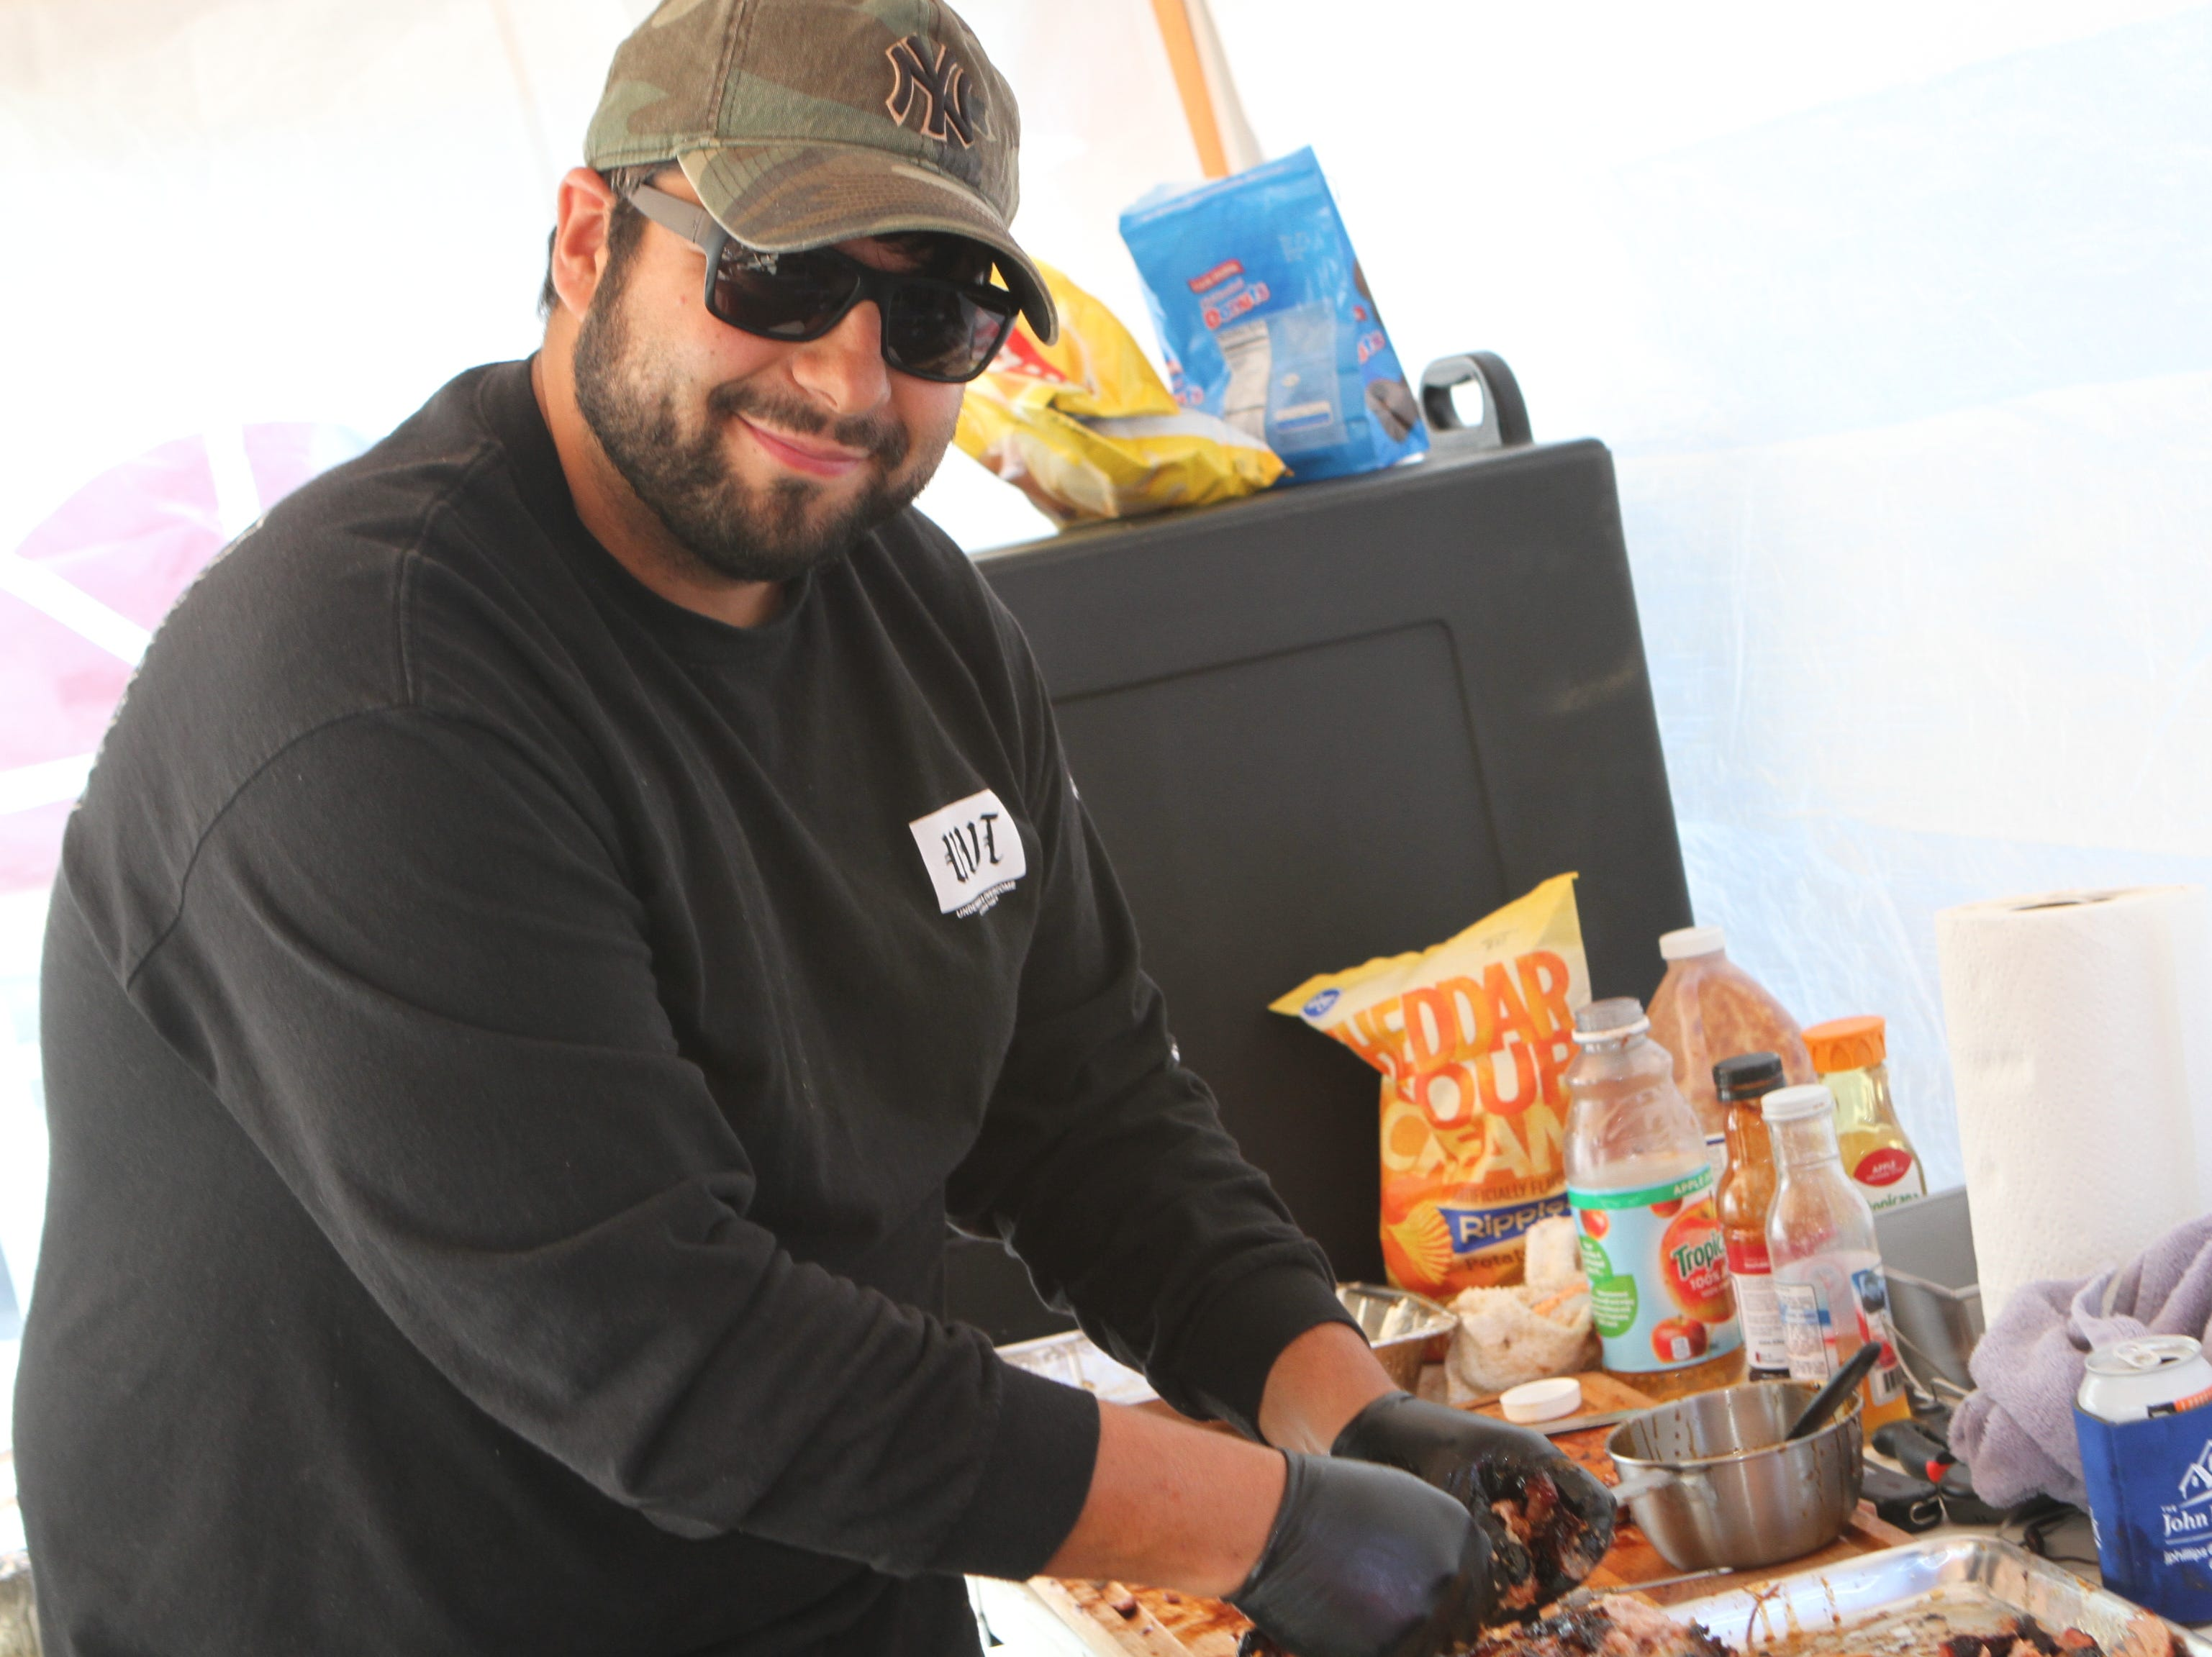 Travis Sumruld of the Pig Destroyer Competition BBQ Team at the annual BBQ Bash at Liberty Park on Saturday, October 20, 2018.